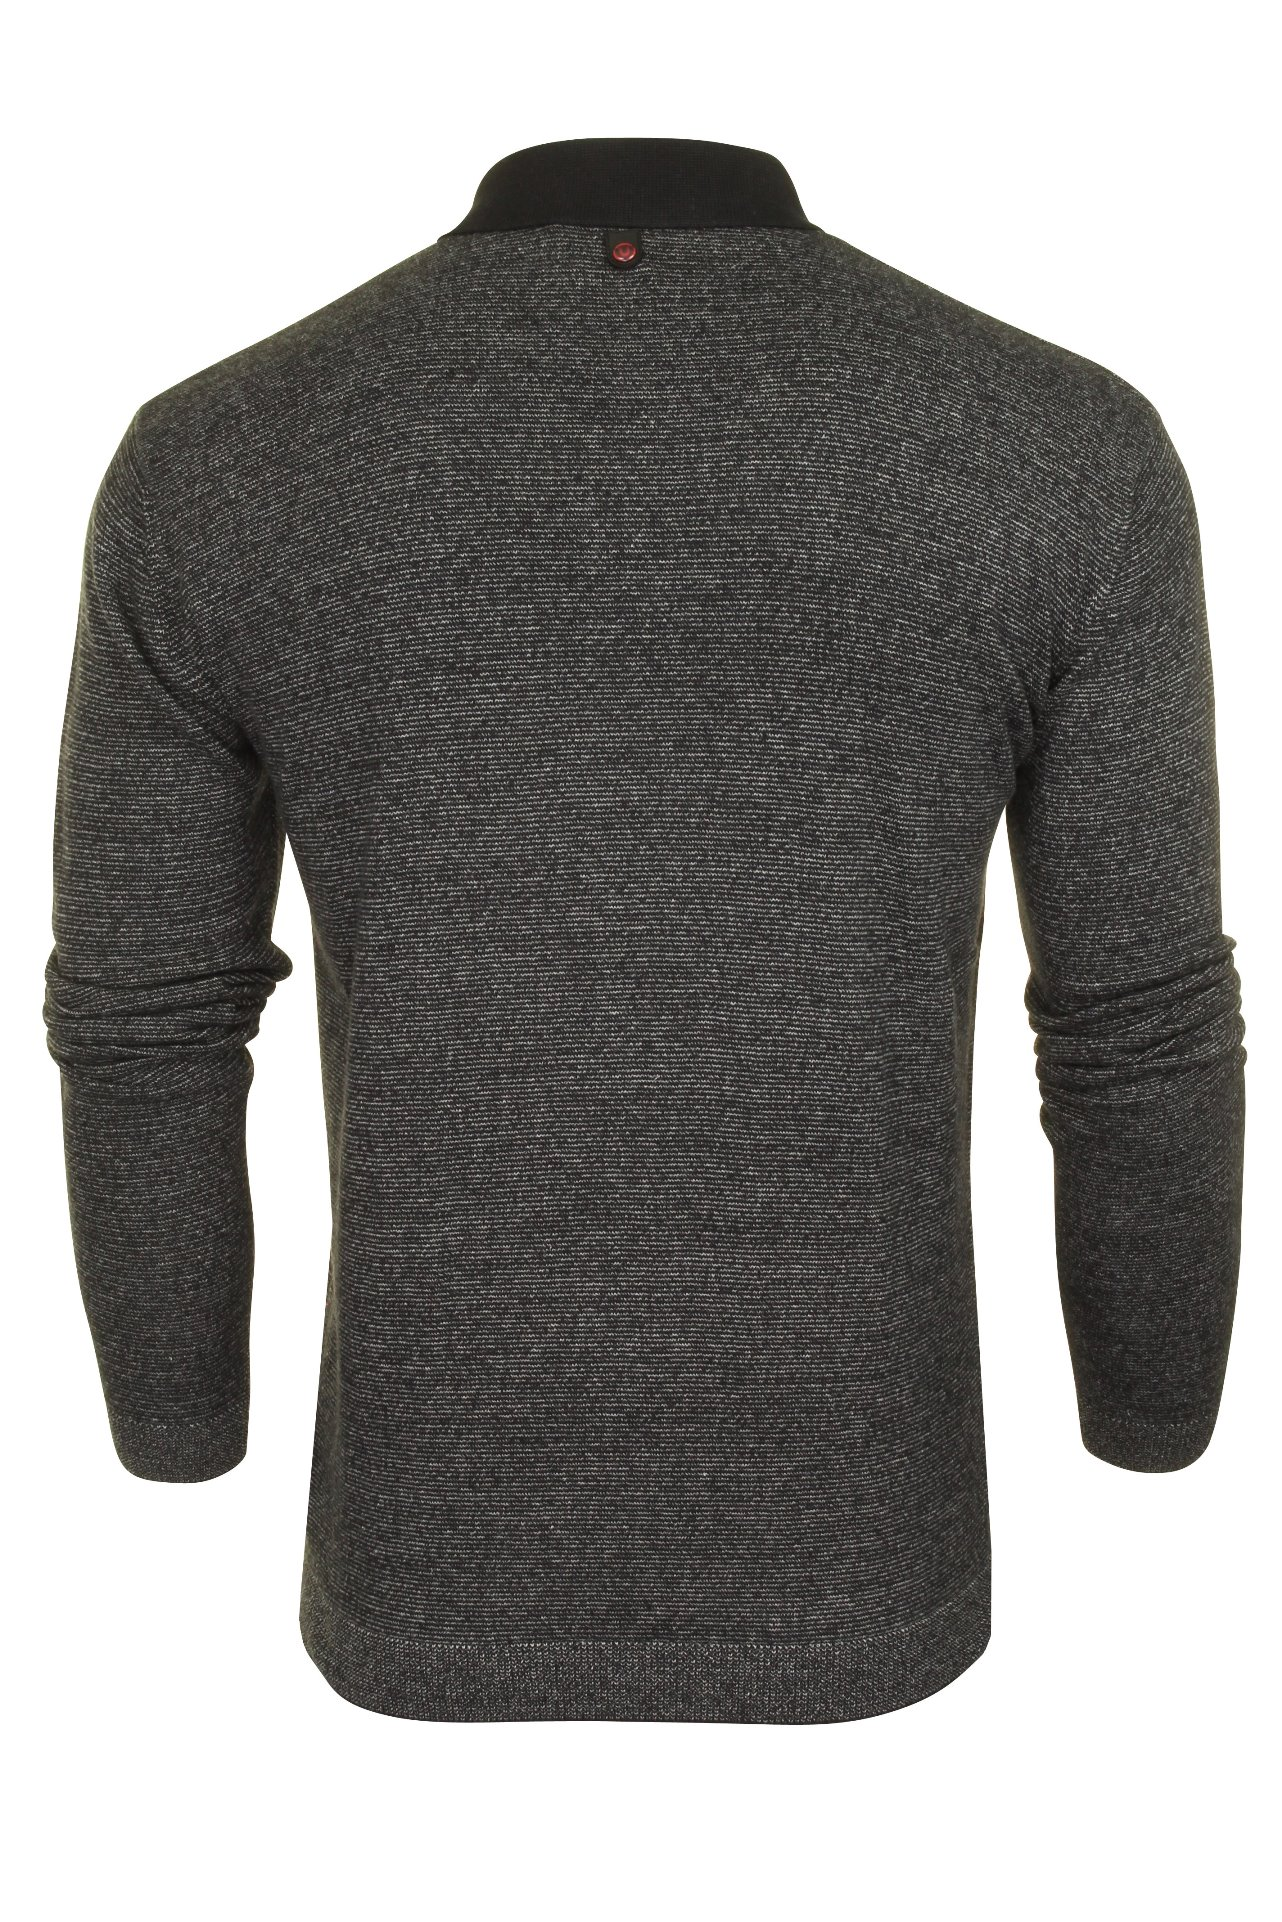 Duck-and-Cover-Mens-039-Cartwright-039-Knitted-Polo-Shirt-Long-Sleeved thumbnail 11